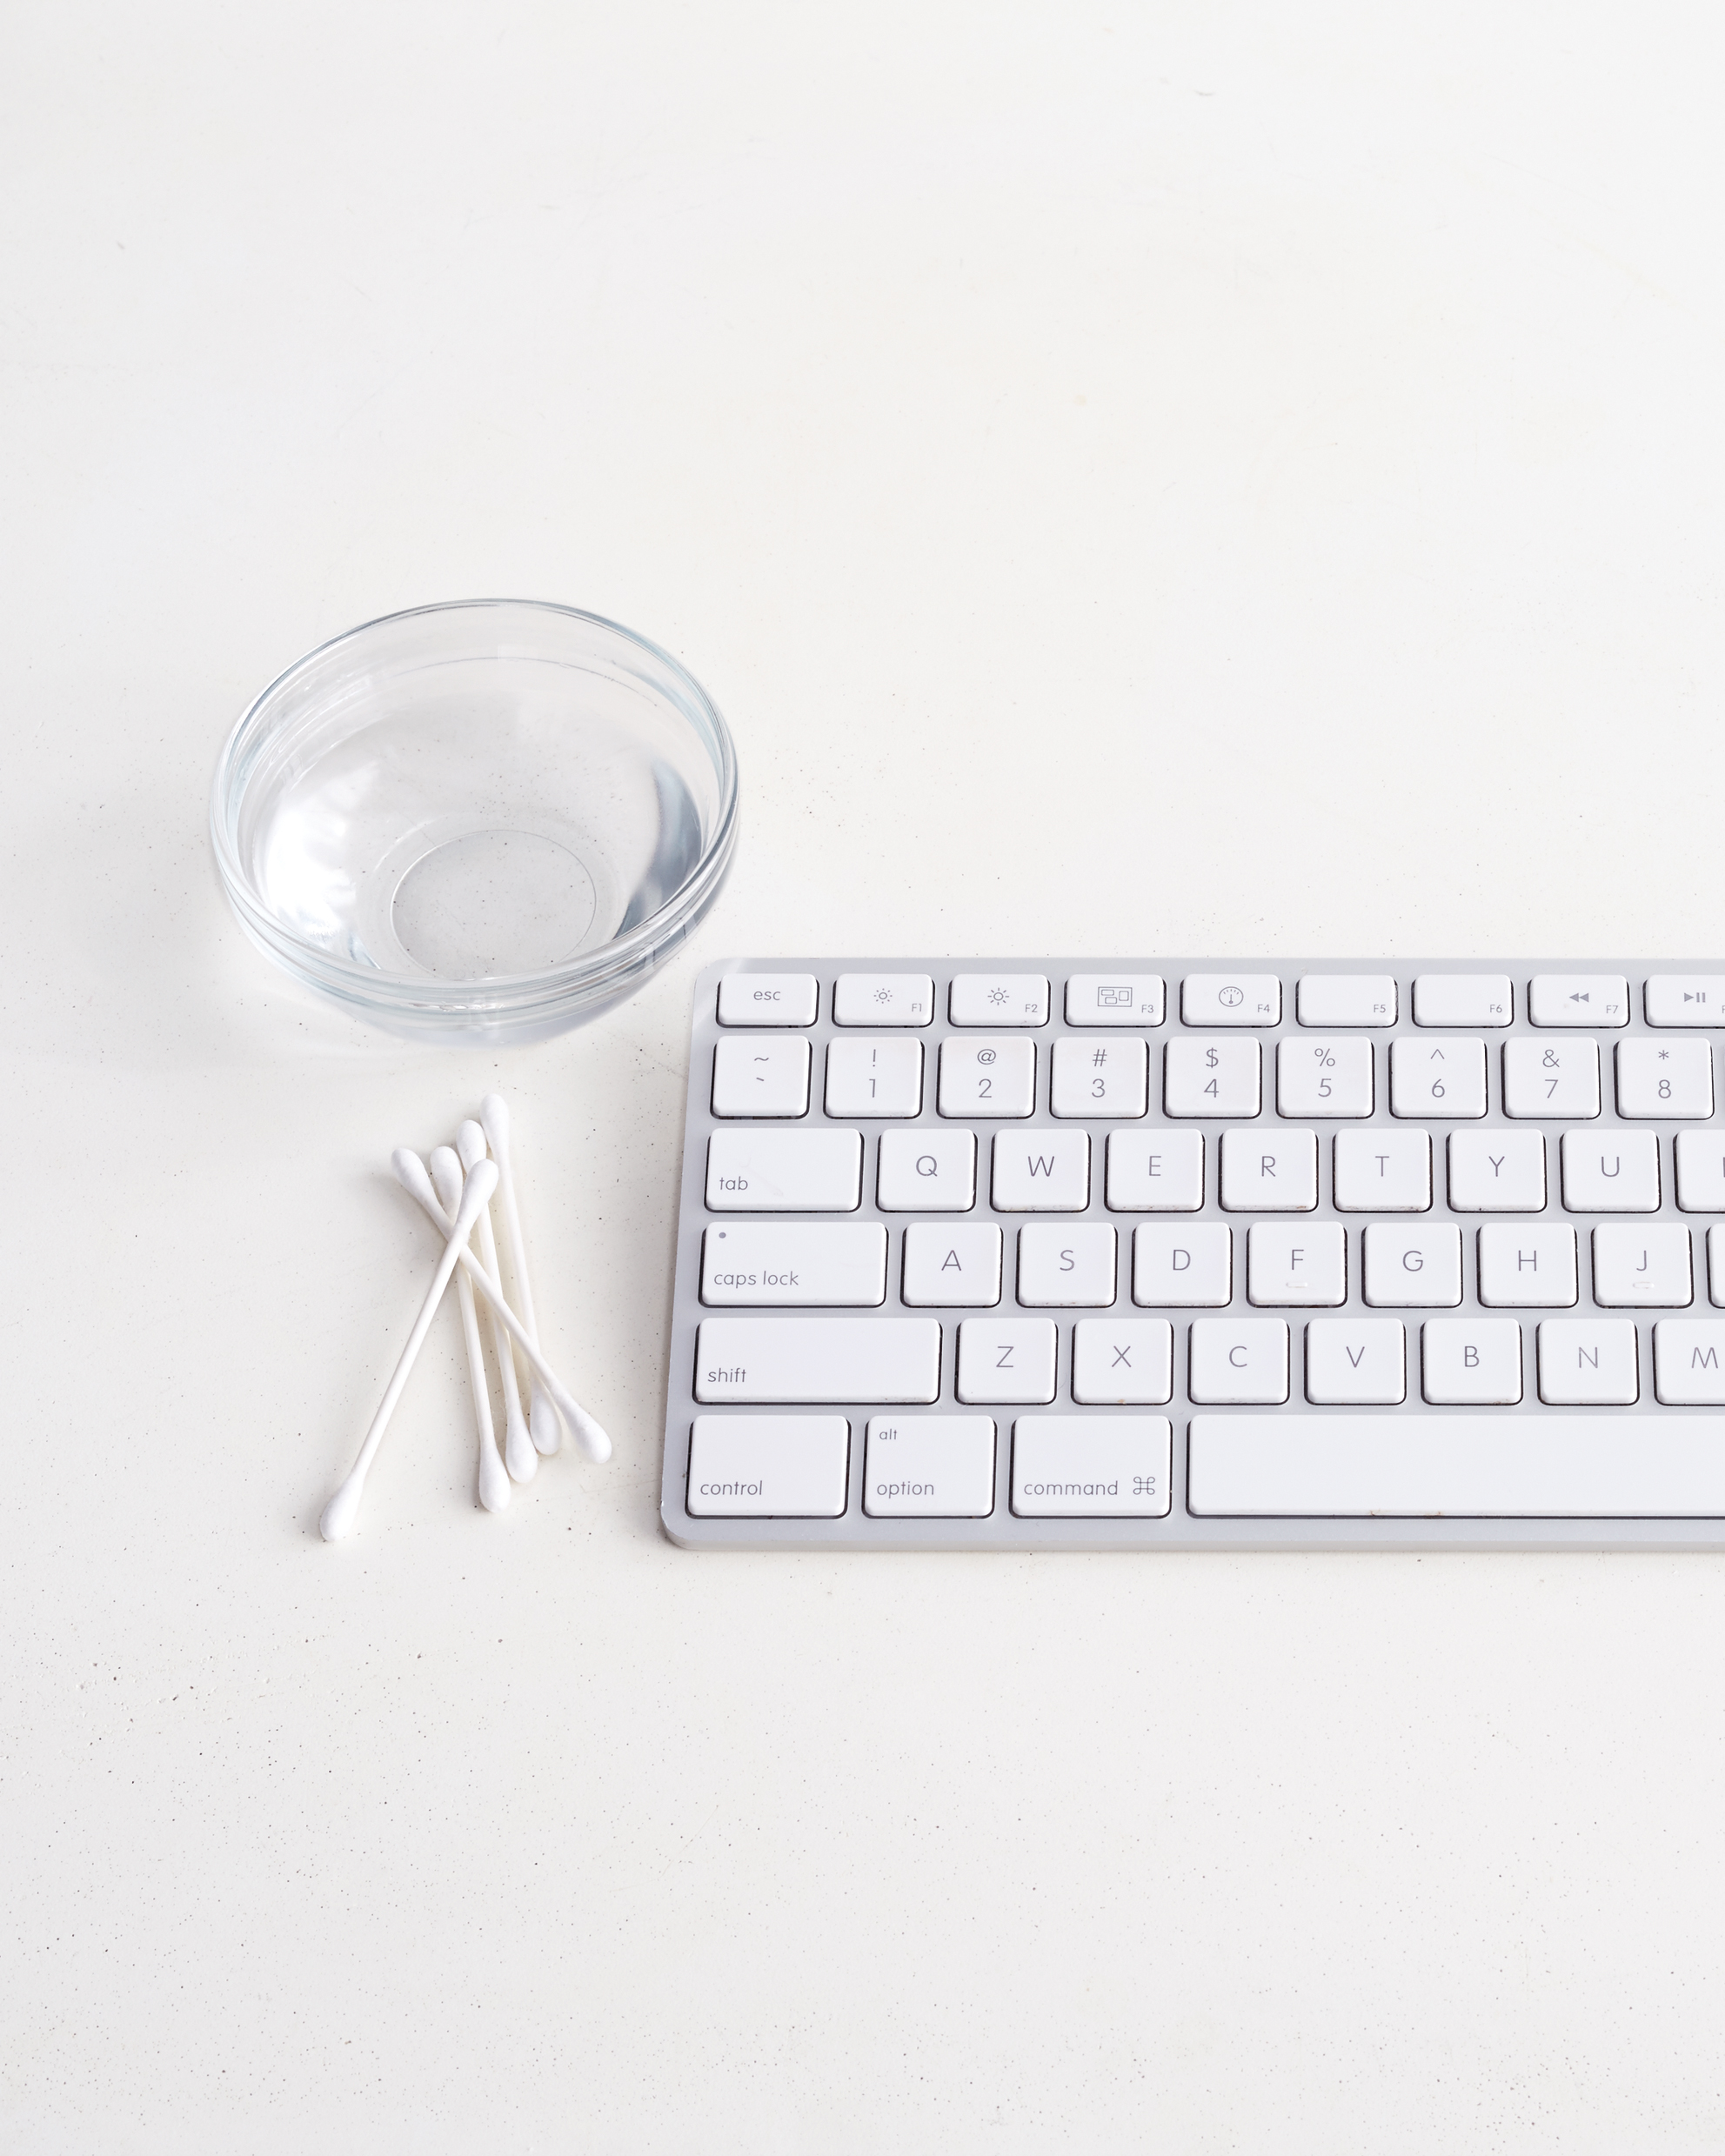 keyboard-q-tips-030-d111805.jpg